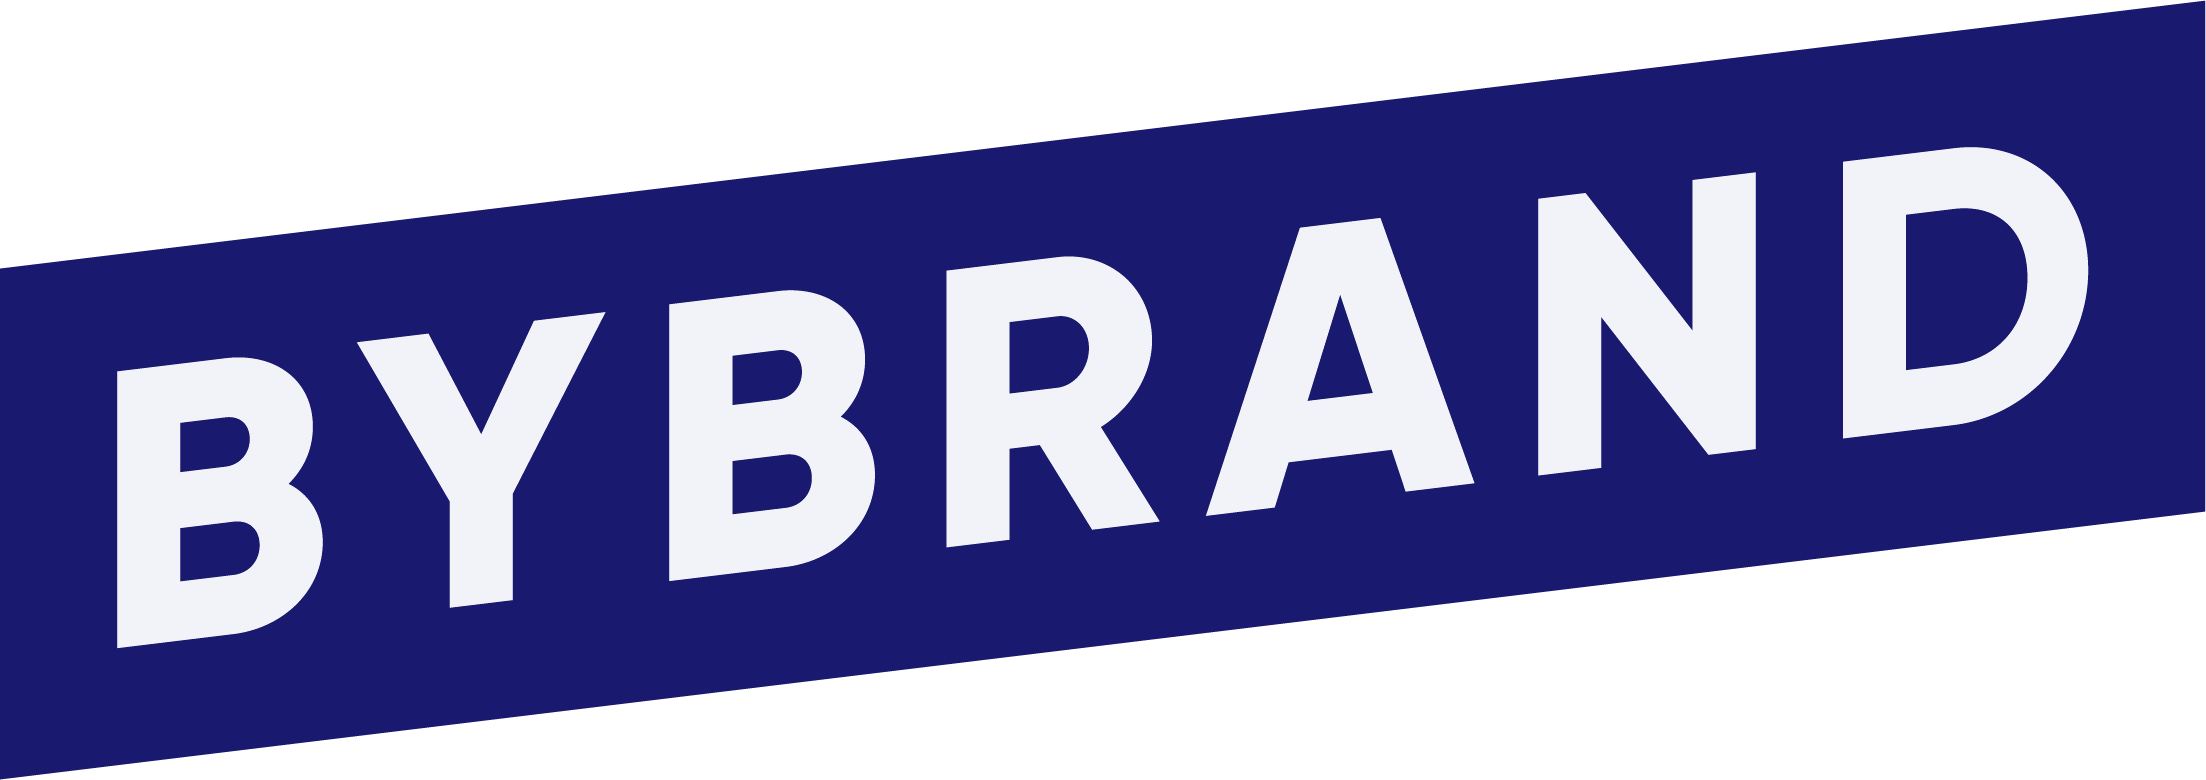 Bybrand official logo